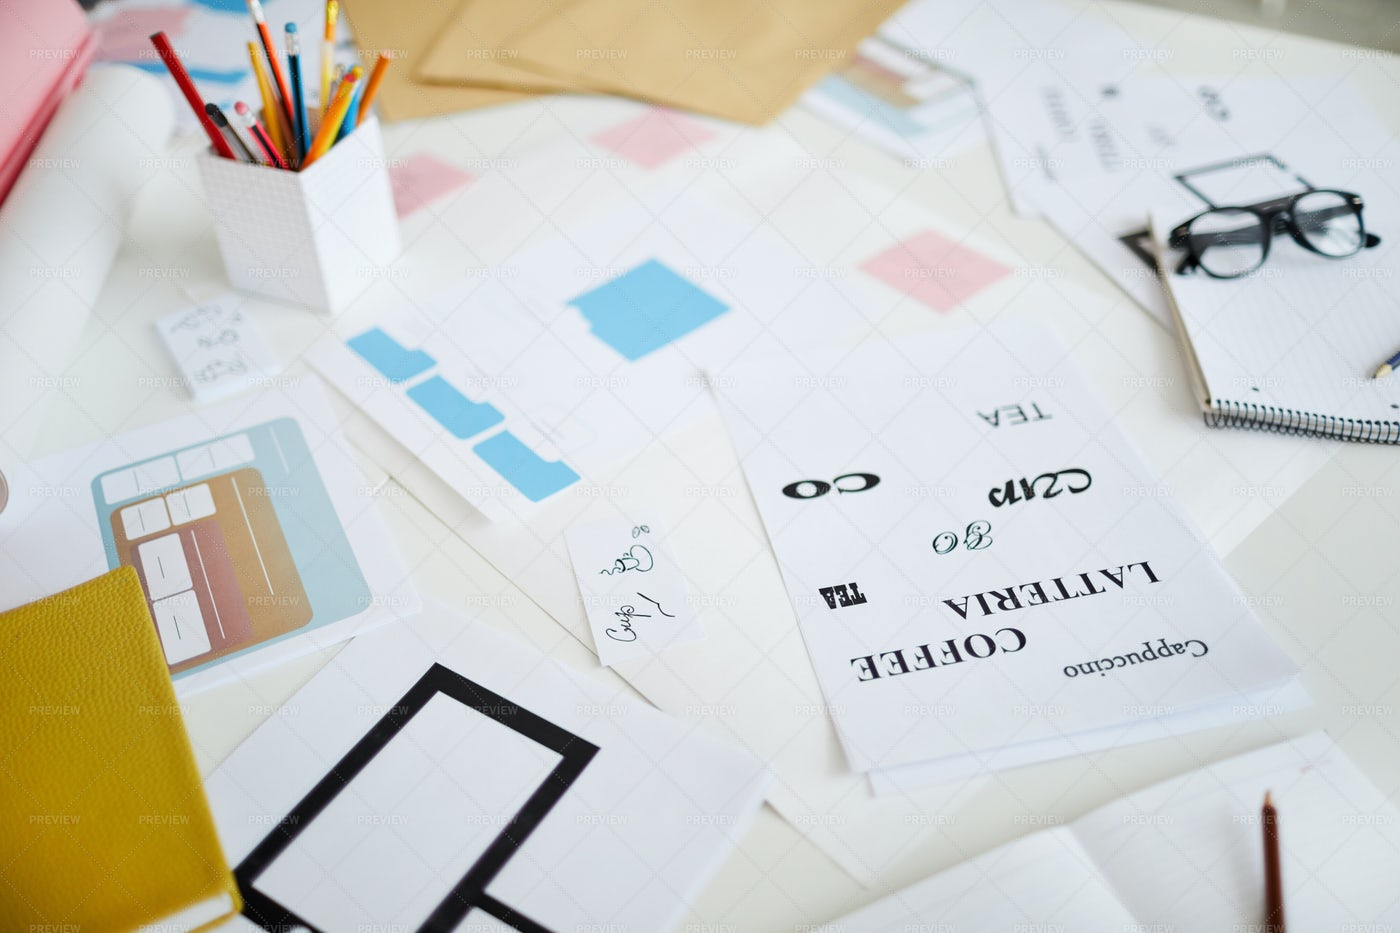 Scattered Designs On Desk: Stock Photos